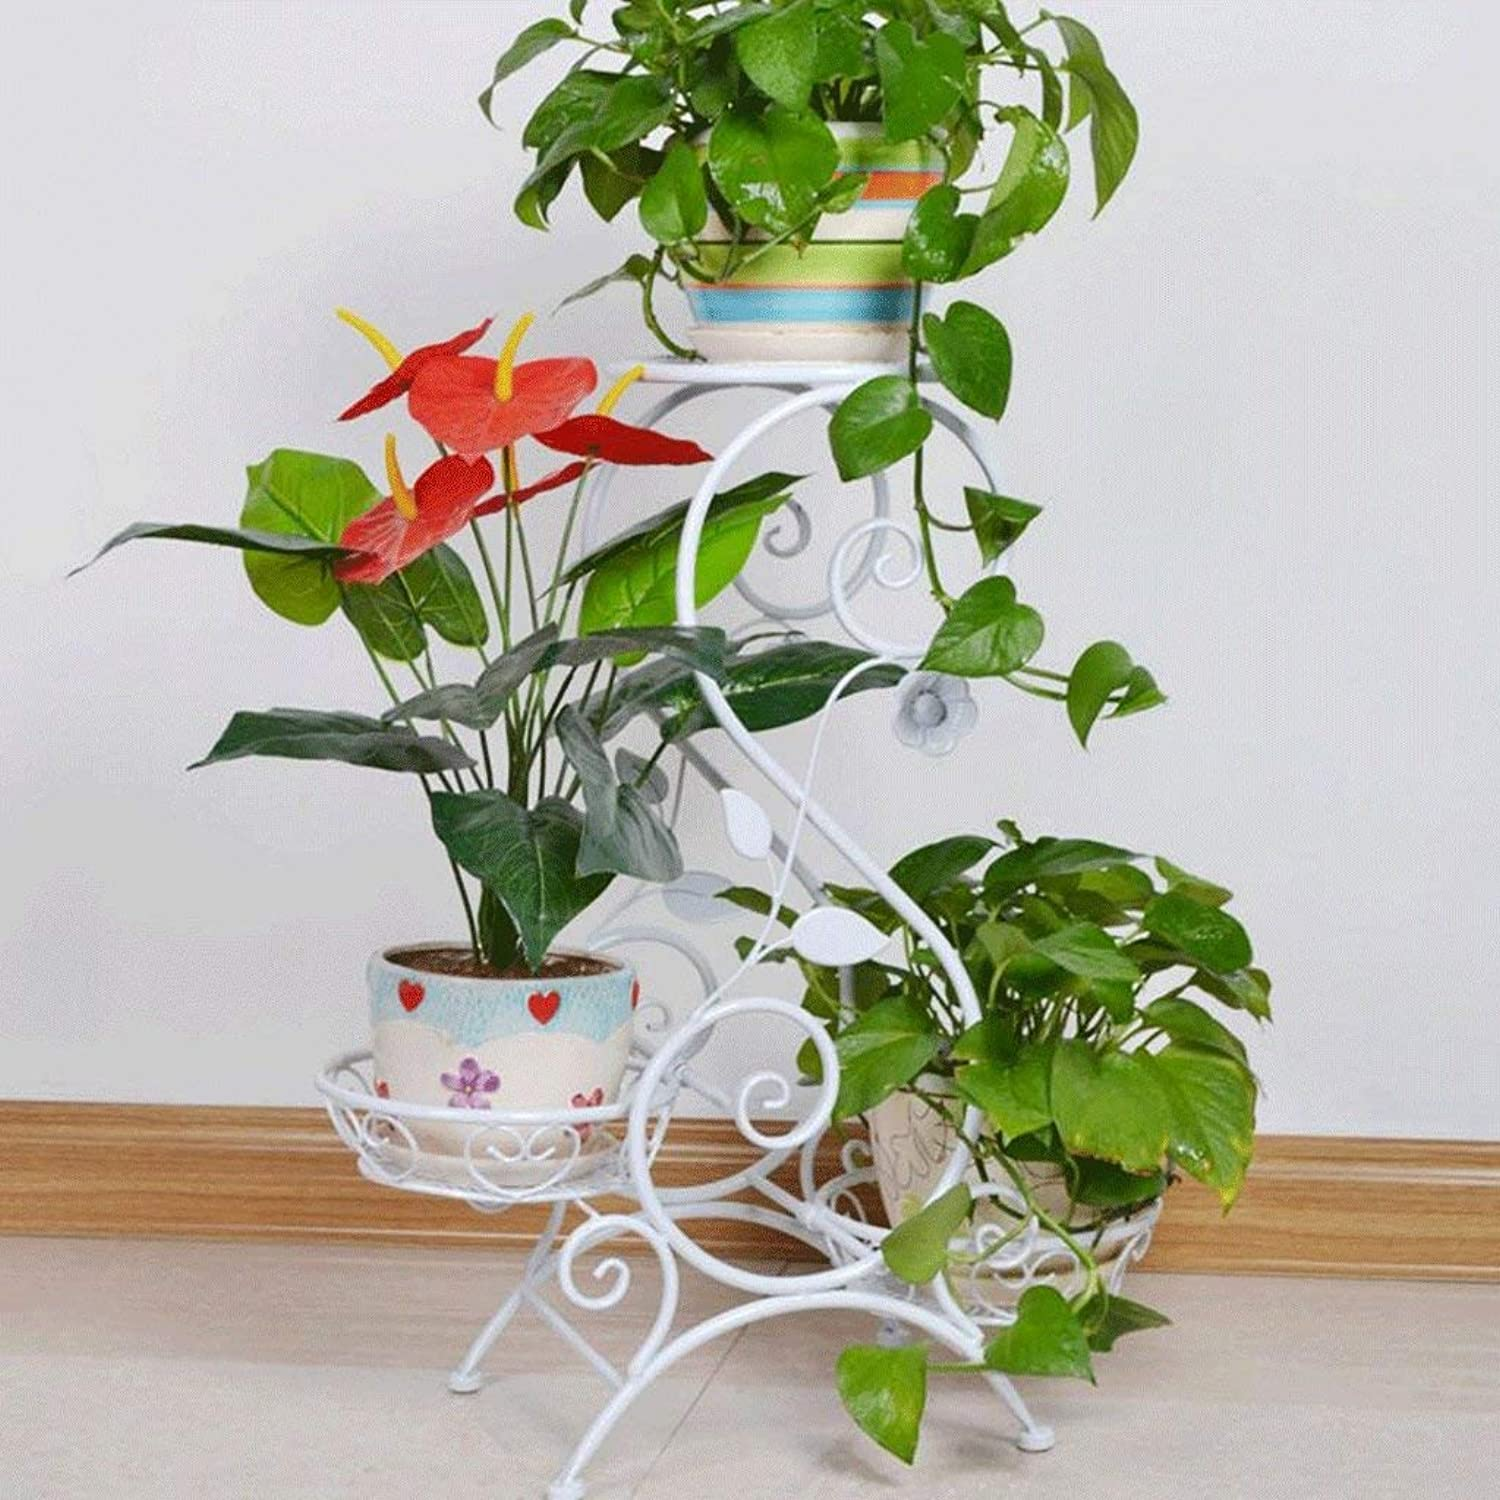 Gifts & Decor Plant Stand Shelf Flower Racks Iron Multilayer Indoor Living Room Balcony Three Flower Pot Rack (color   A)